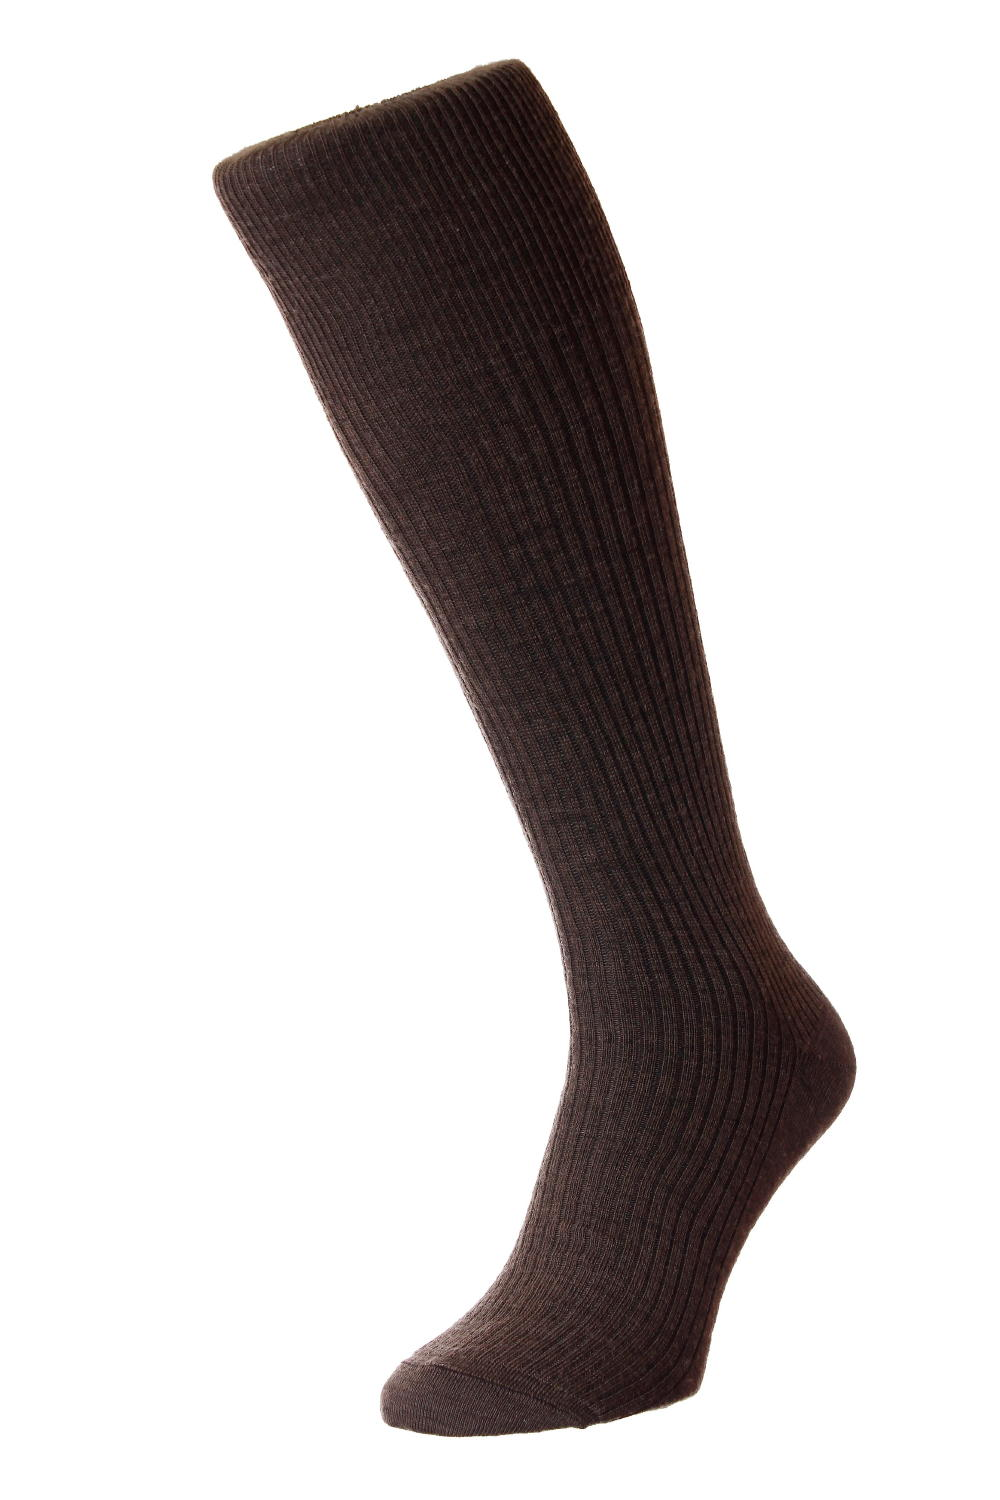 HJ Hall Immaculate Long Knee length Socks, 6-11UK Dark Brown HJ77